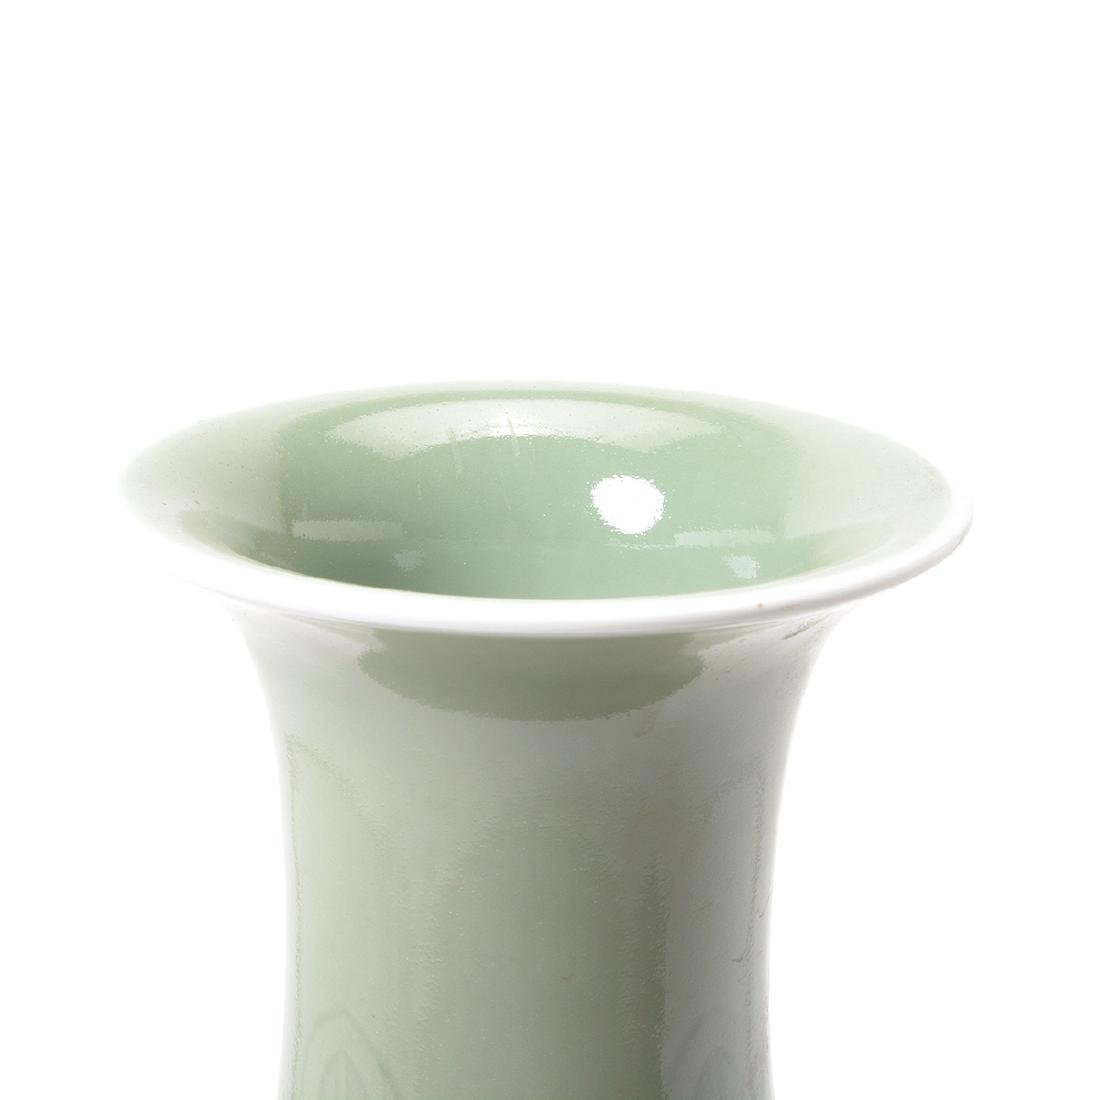 Celadon Glazed Baluster Vase, 19th Century - 2